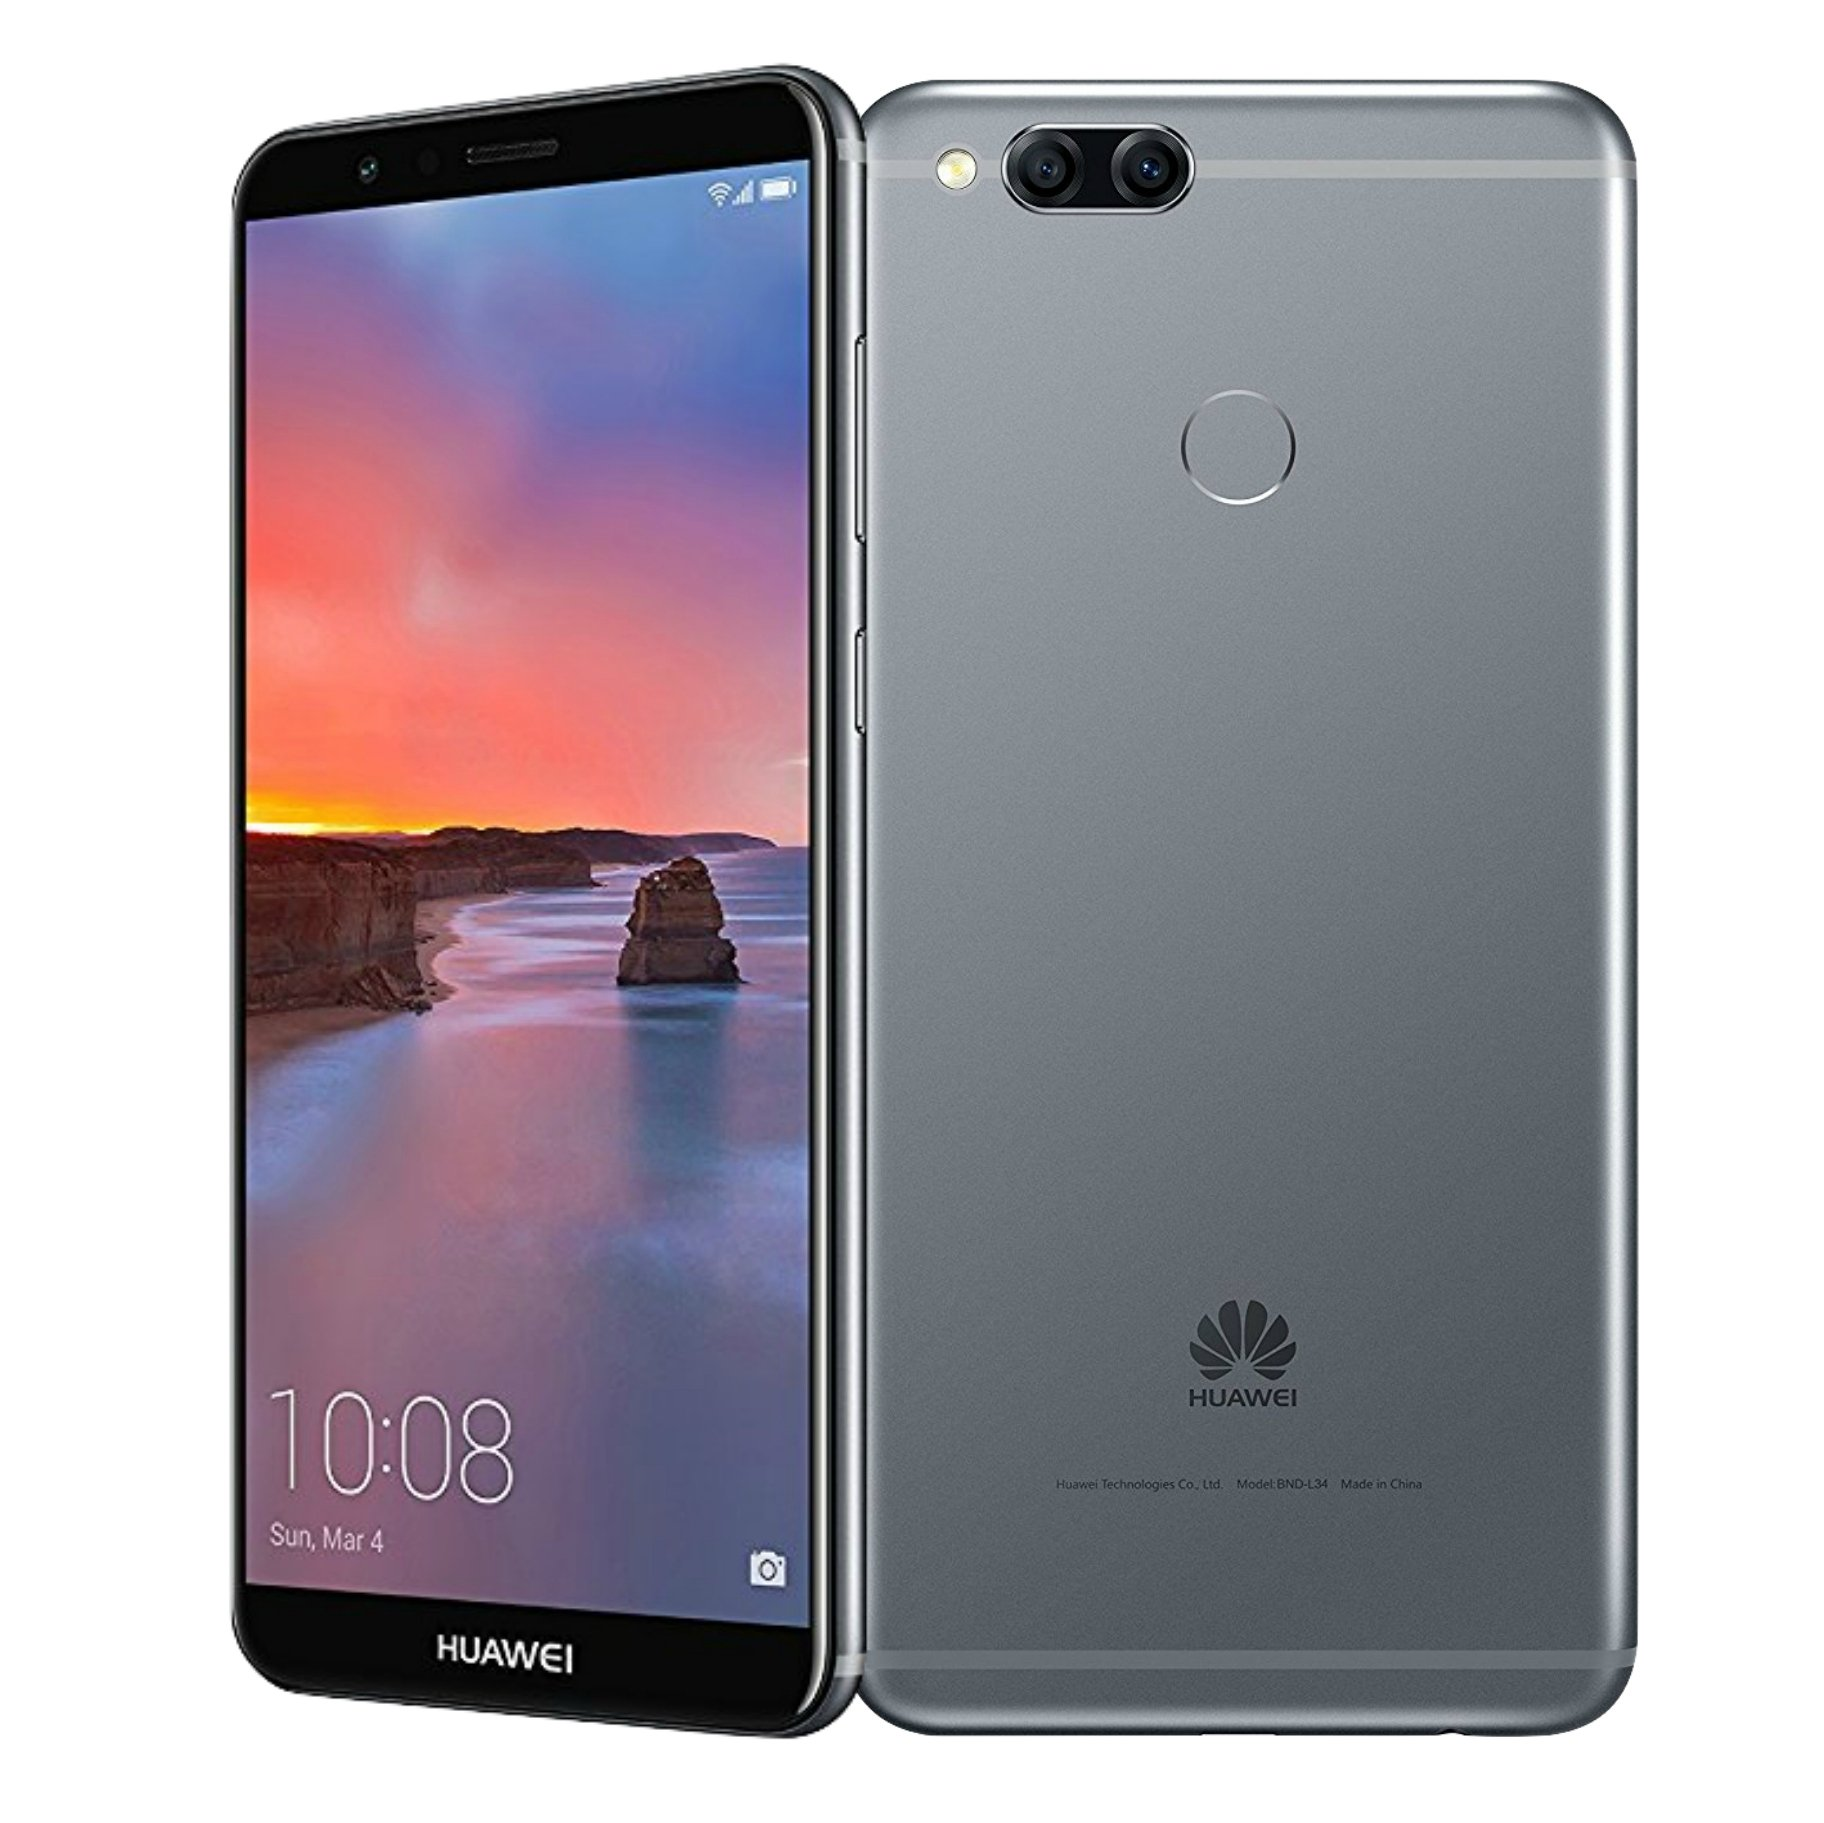 Huawei Smartphone These Are All The Huawei Honor Phones Coming Out In 2018 Android